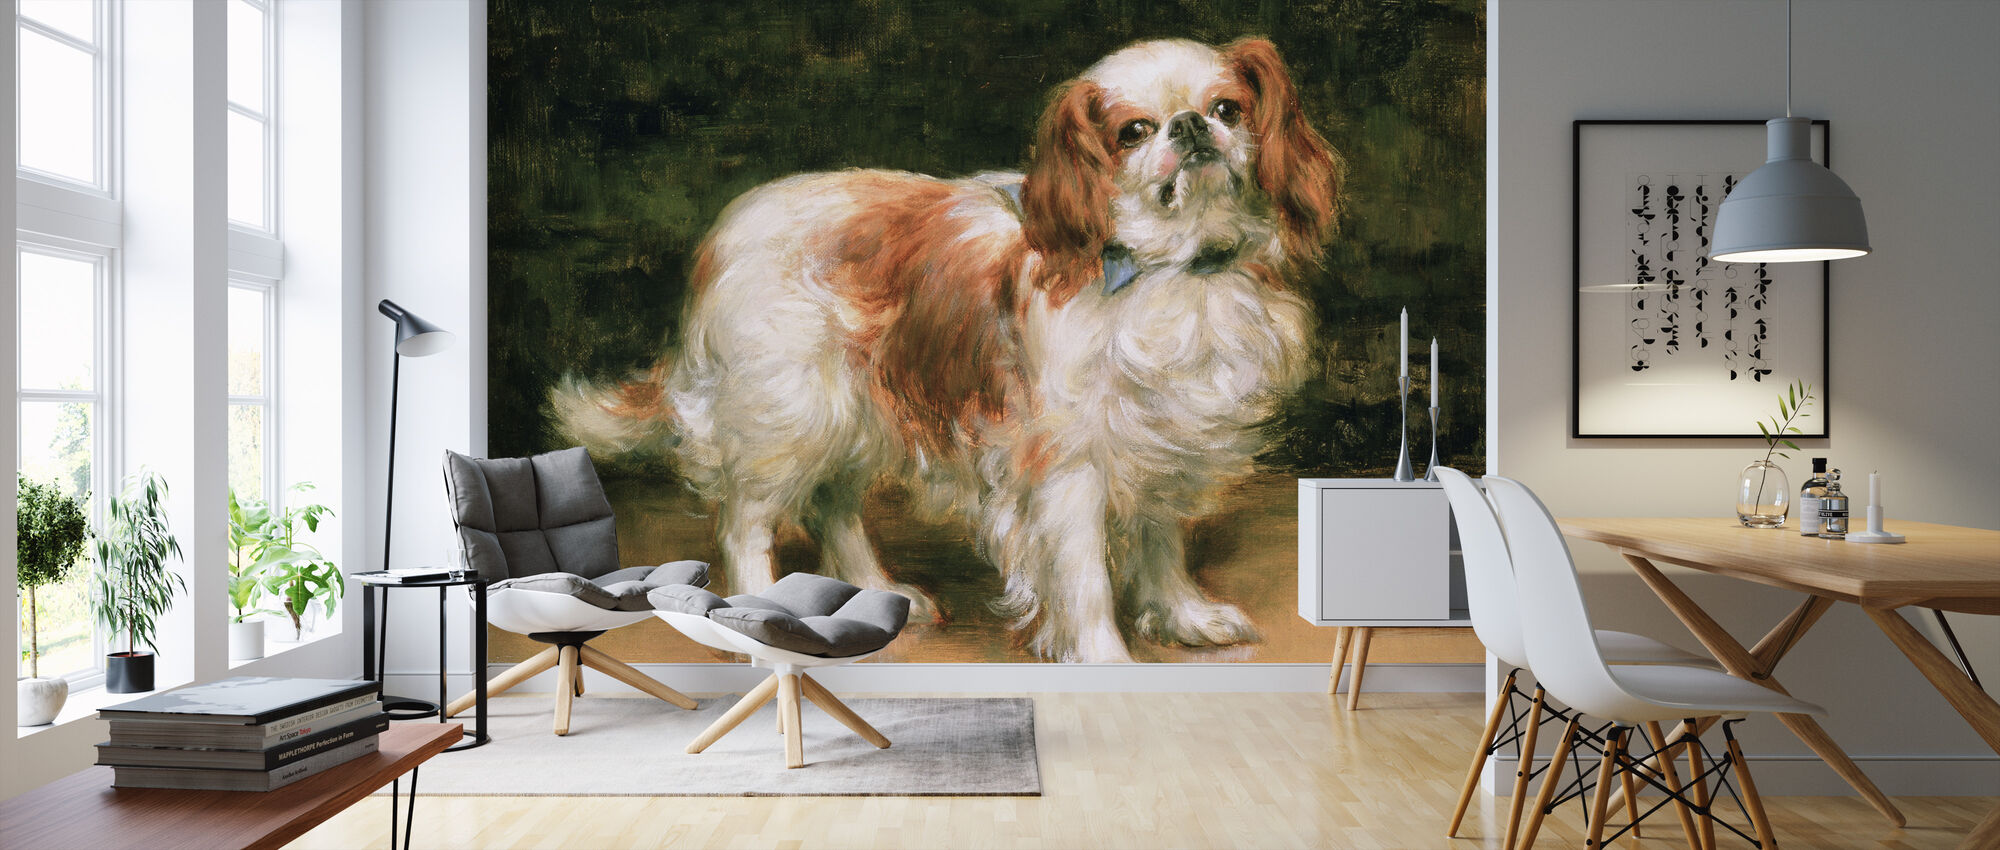 Kong Charles Spaniel, George Sheridan Knowles - Tapet - Stue